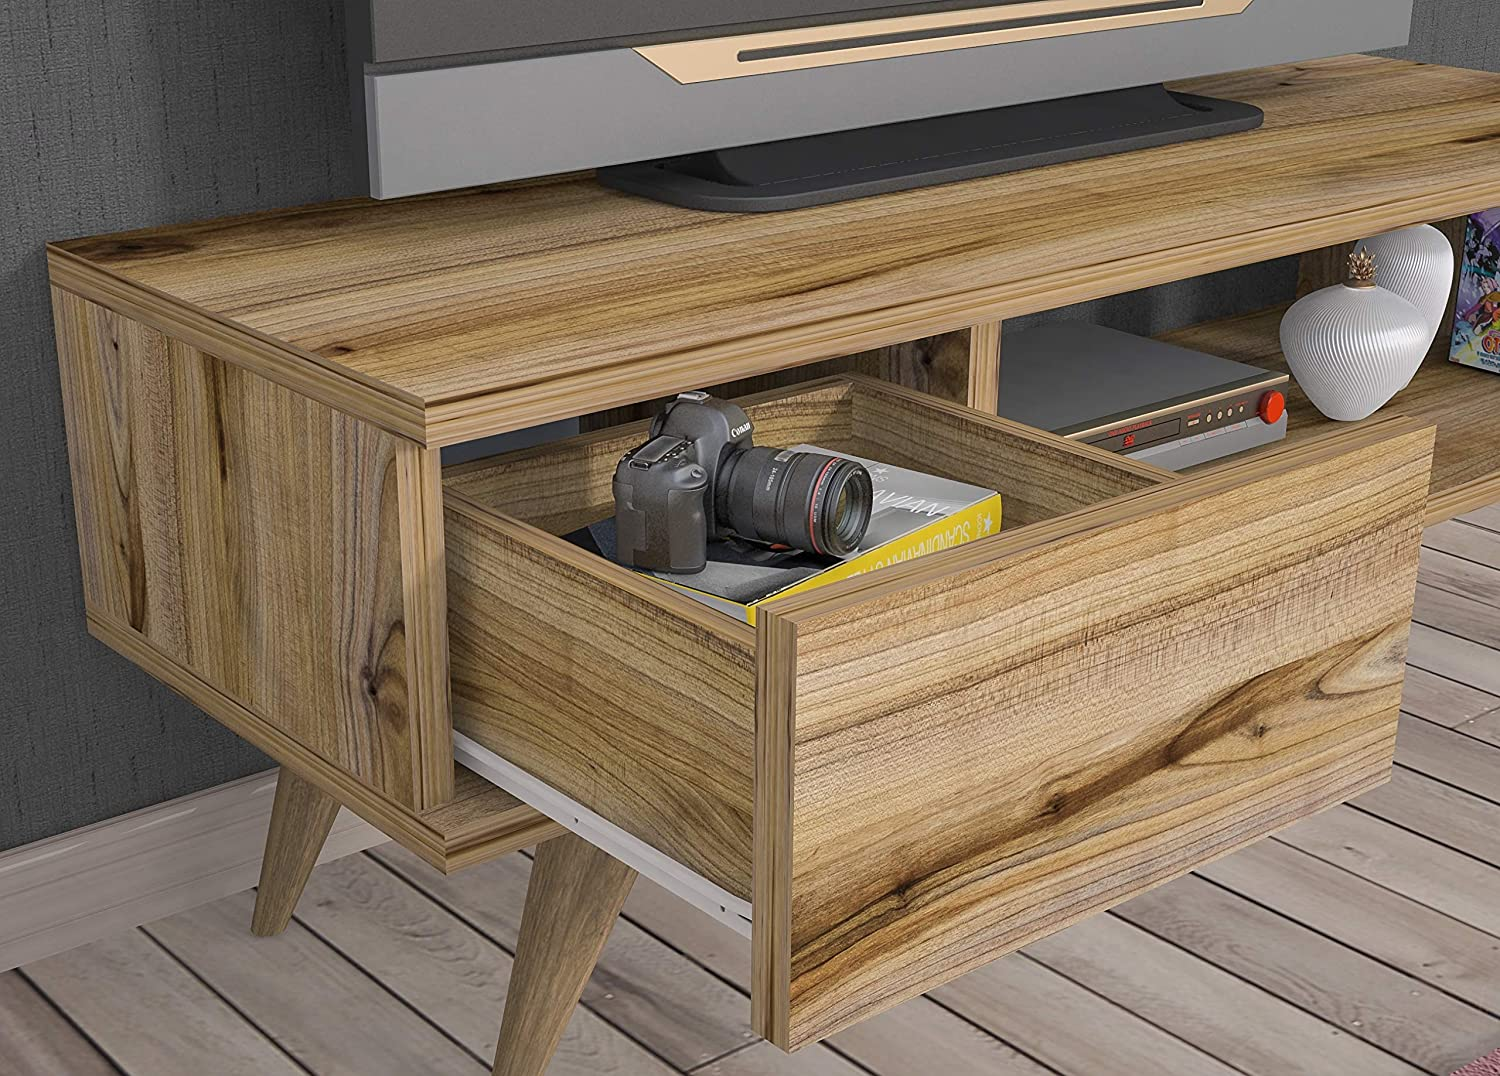 Vivense Maya TV Stand Retro TV Cabinet with Drawer Oak TV Unit for TVs up to 45 inches 90x30 cm